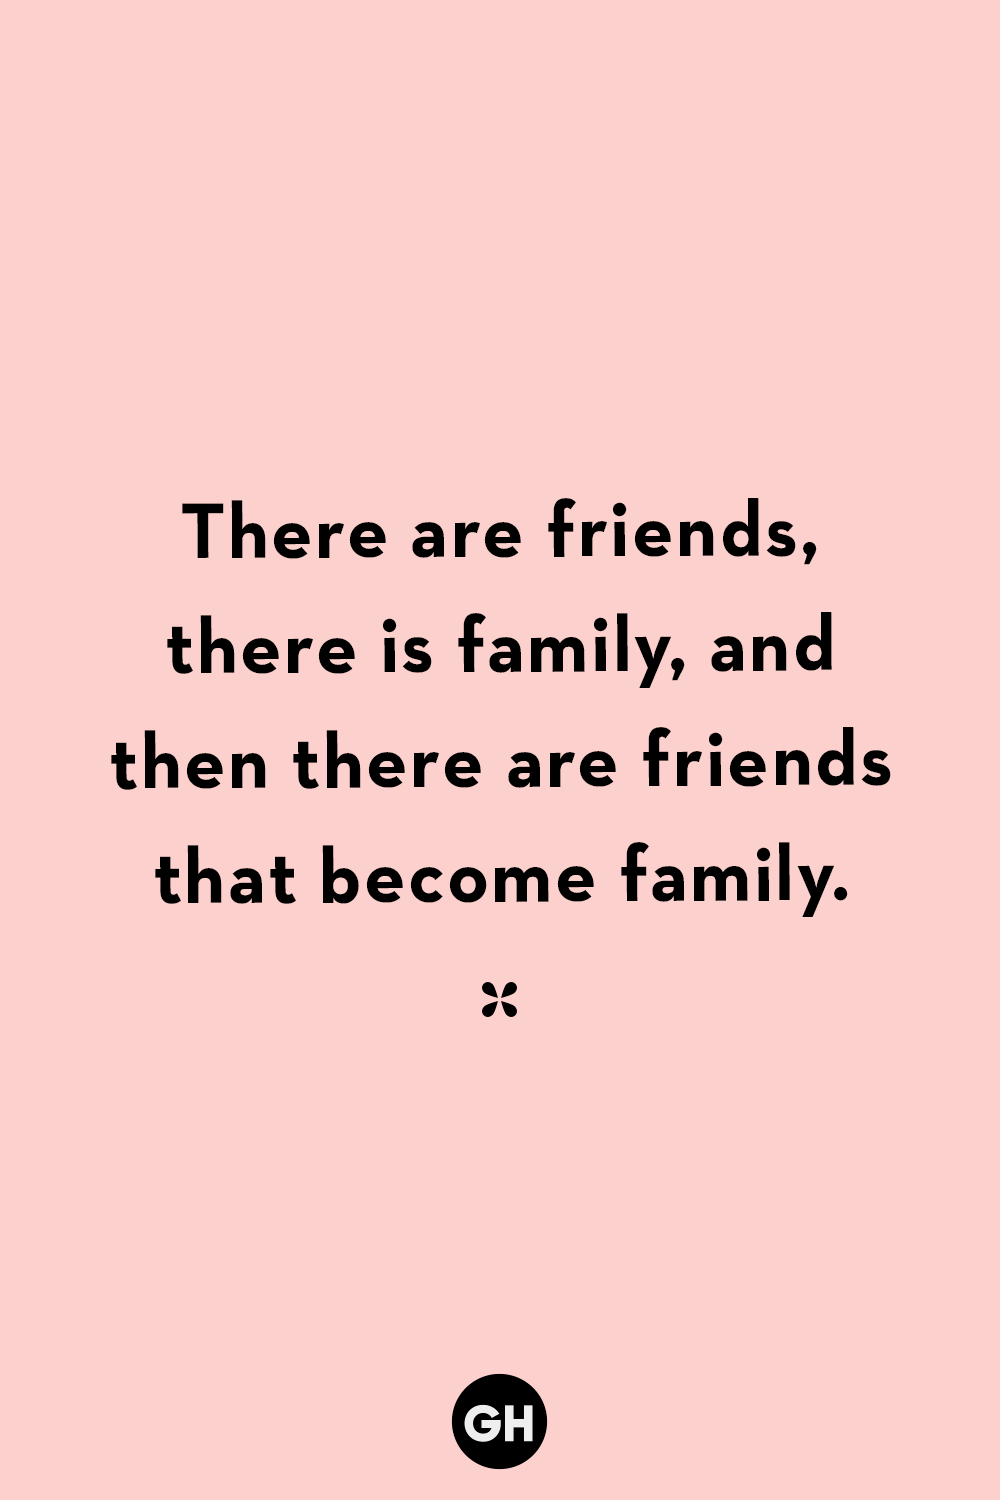 40 Short Friendship Quotes For Best Friends Cute Sayings About Friends Friends Like Family Quotes Short Friendship Quotes Friends Are Family Quotes